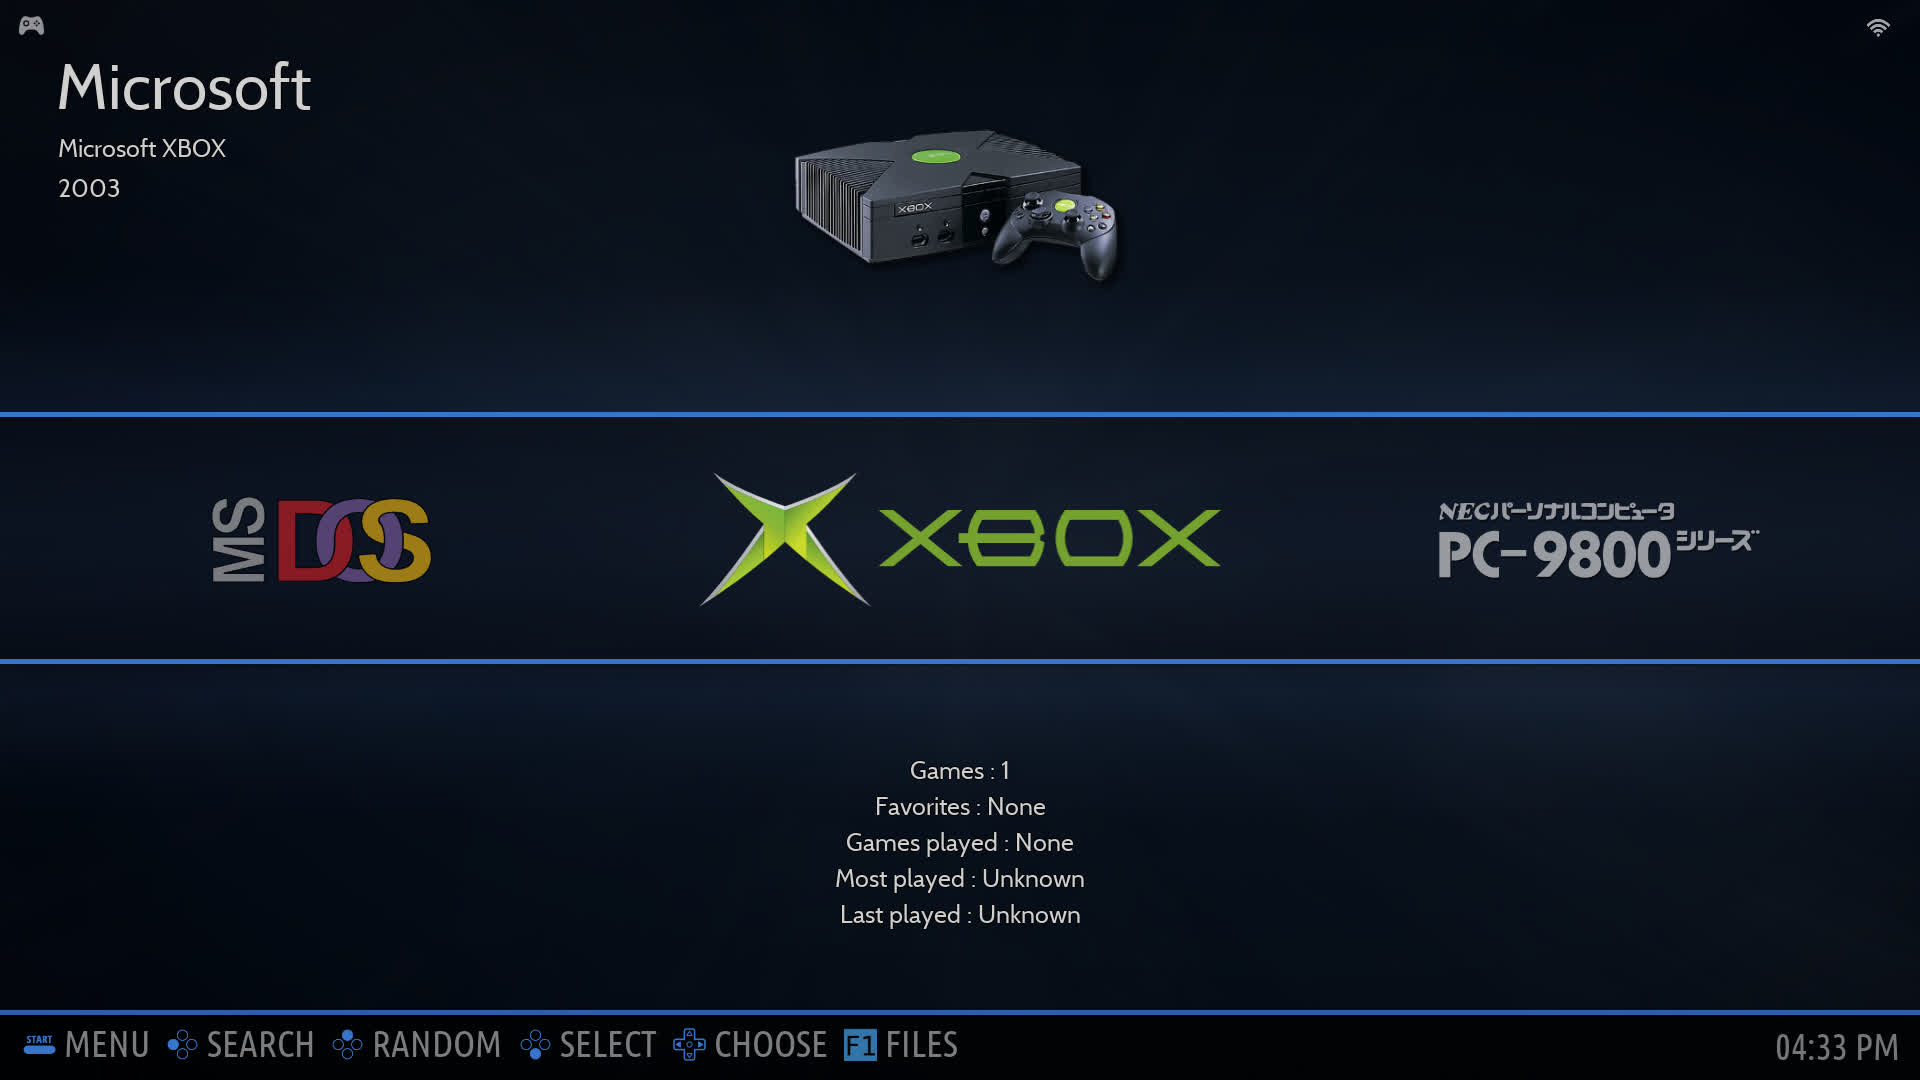 Xbox system as it appears in the system list.